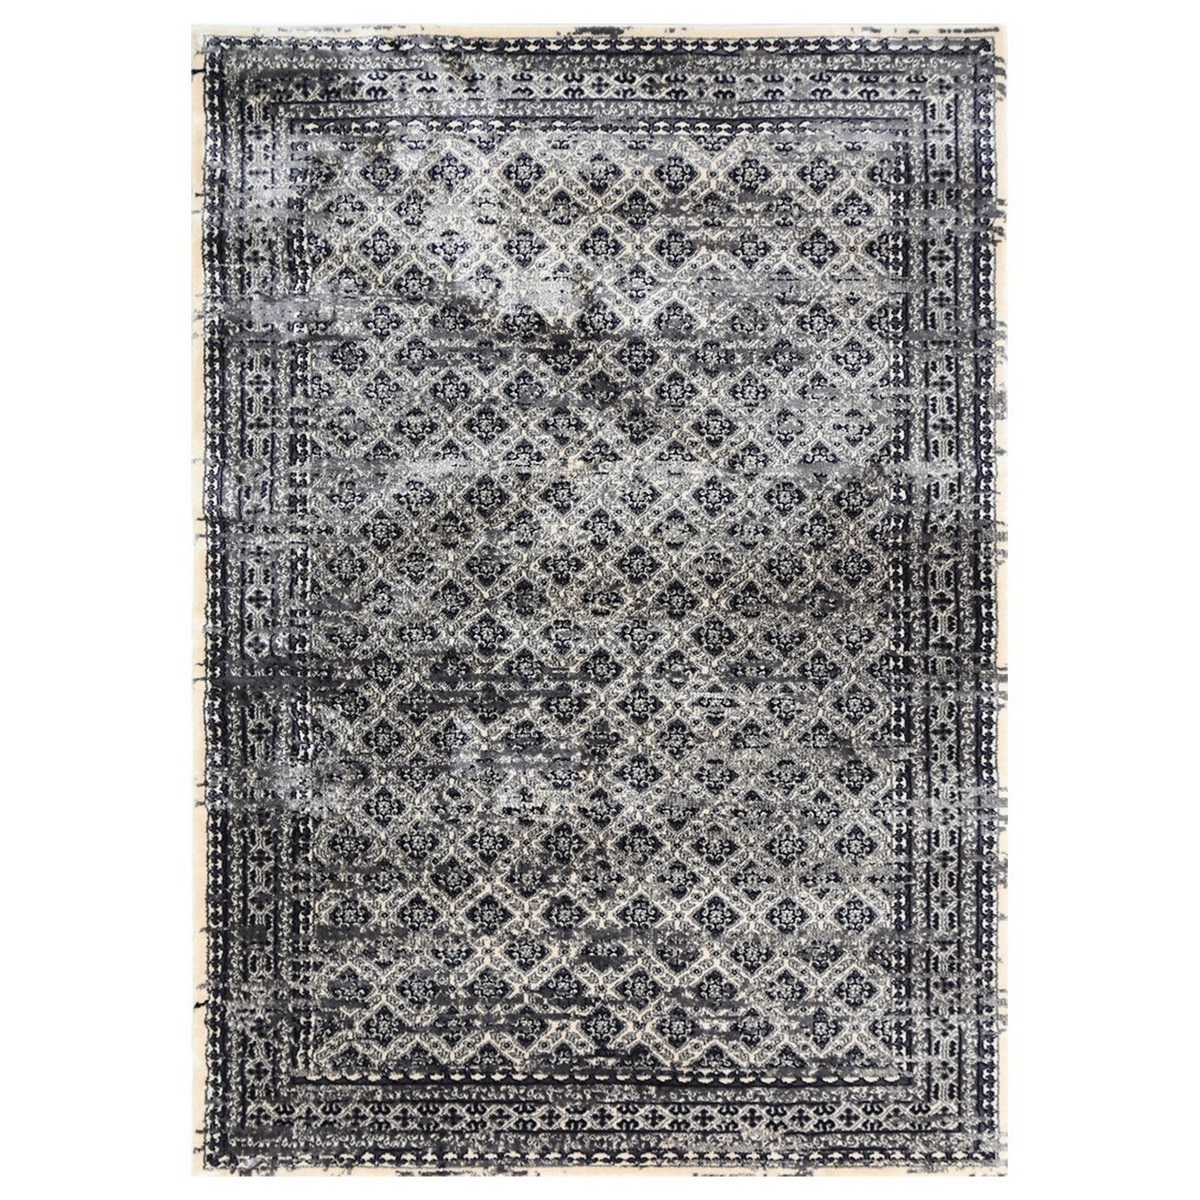 Artifact Hester Distressed Oriental Rug, 200x290cm